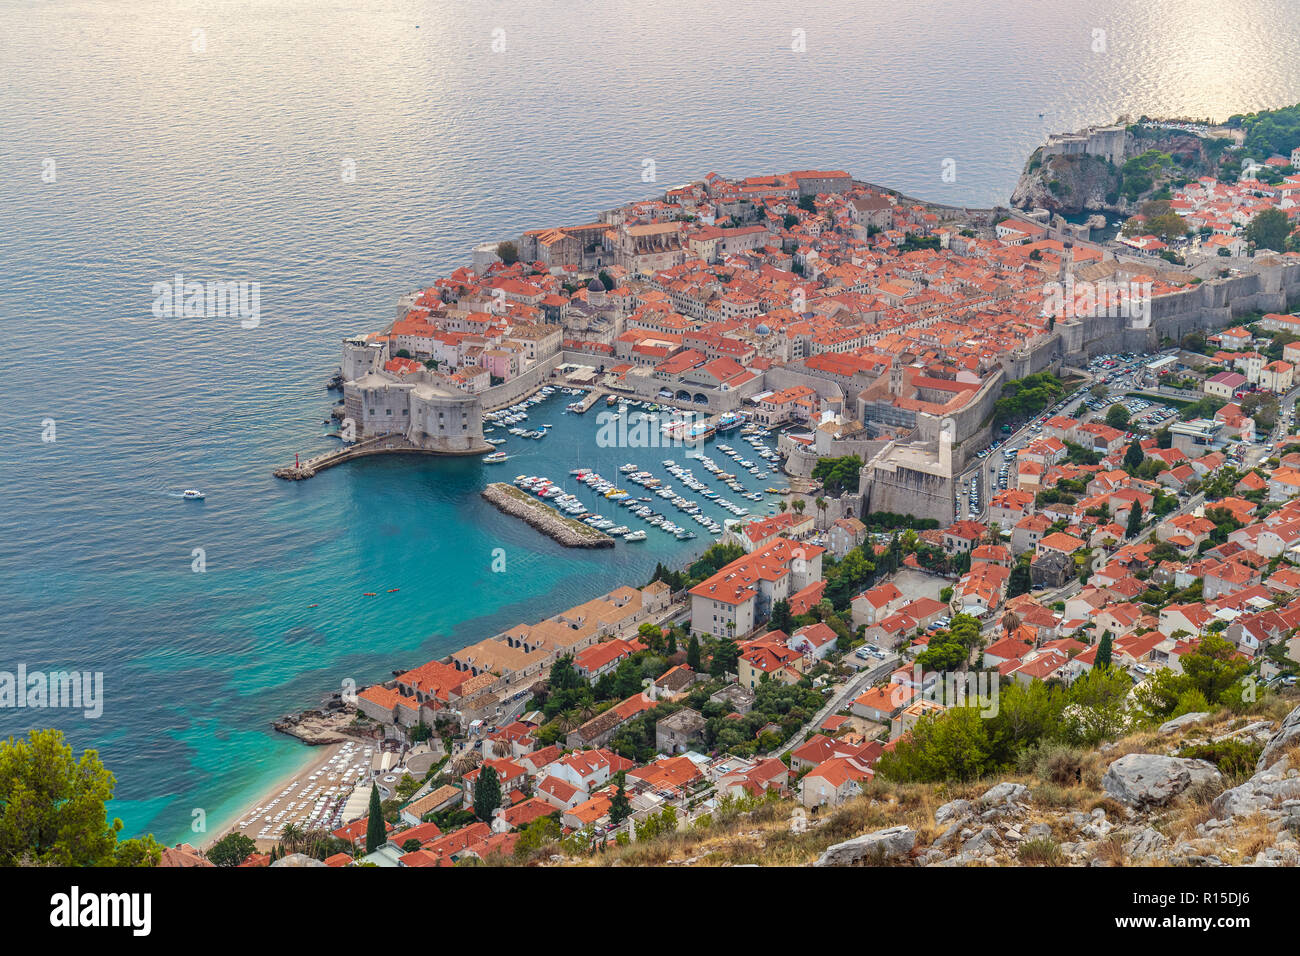 View from above to the intire old town Dubrovnik surrounded by its walls, the harbour full of boats and the beach with cristal clear tourquoise whater - Stock Image